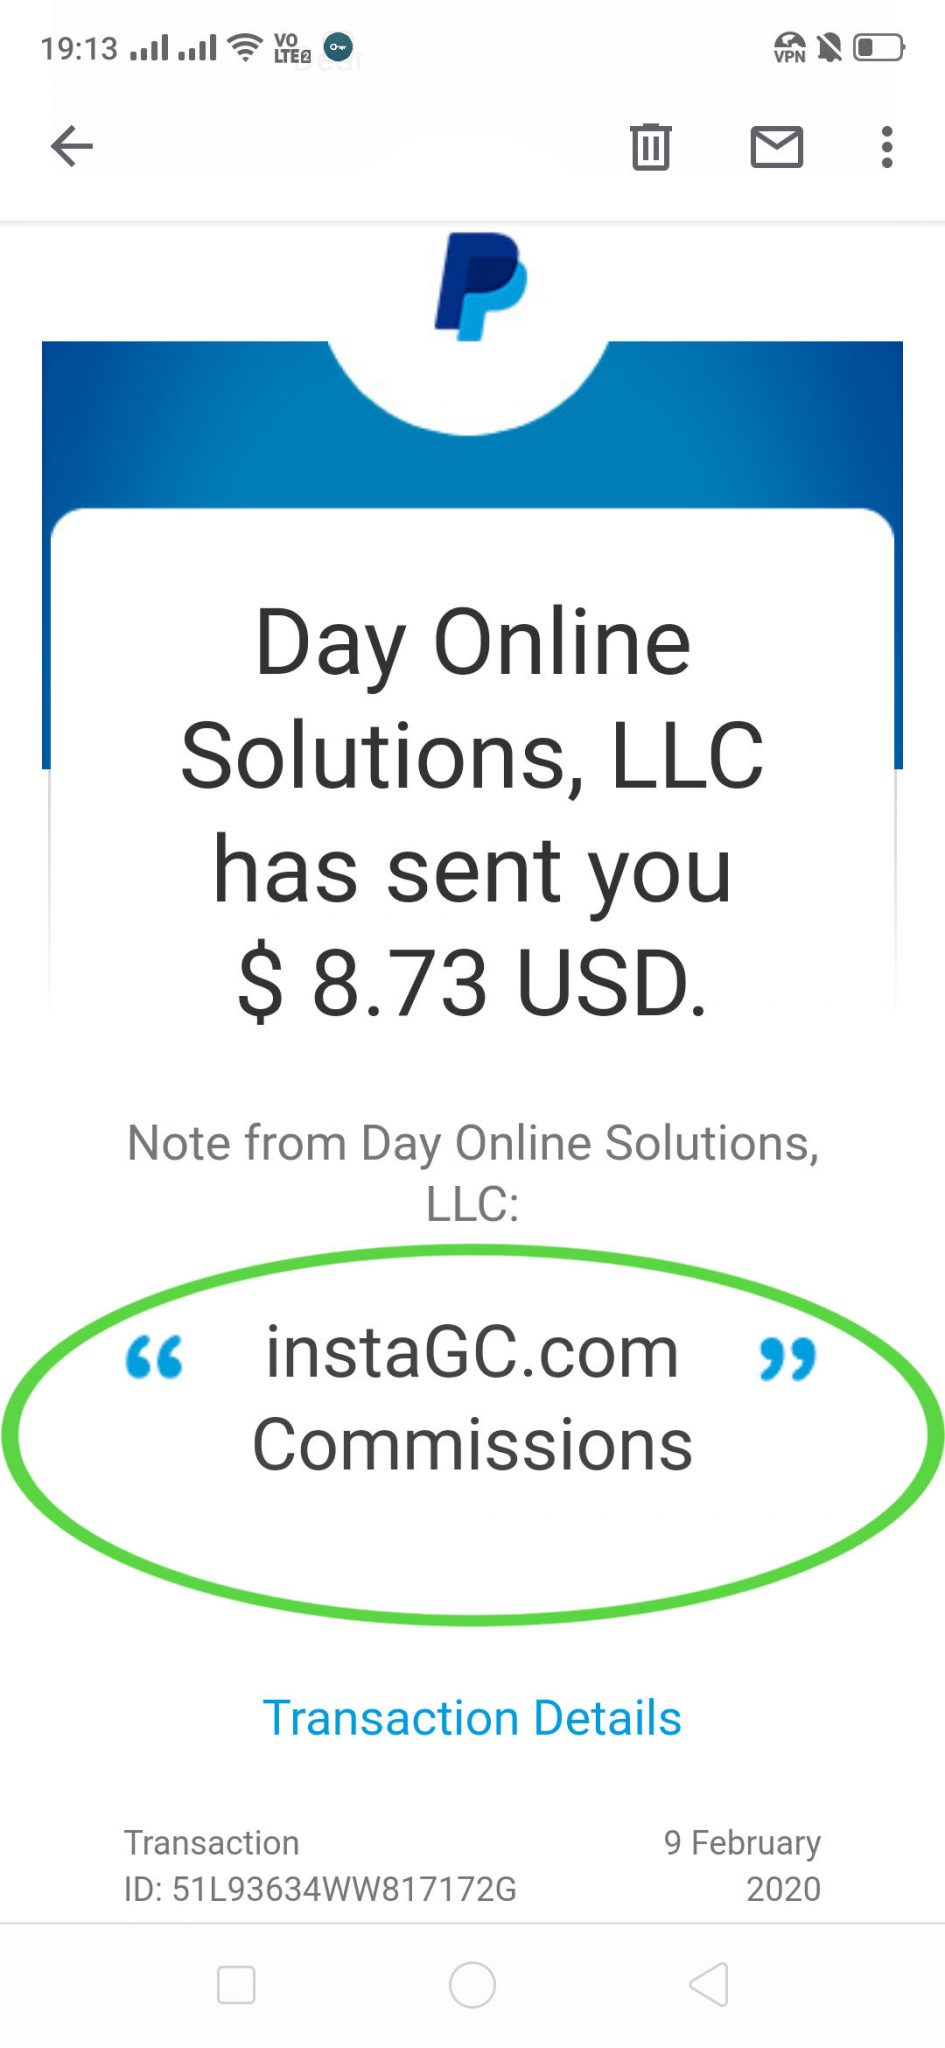 InstaGC PayPal Payment. InstaGC takes just